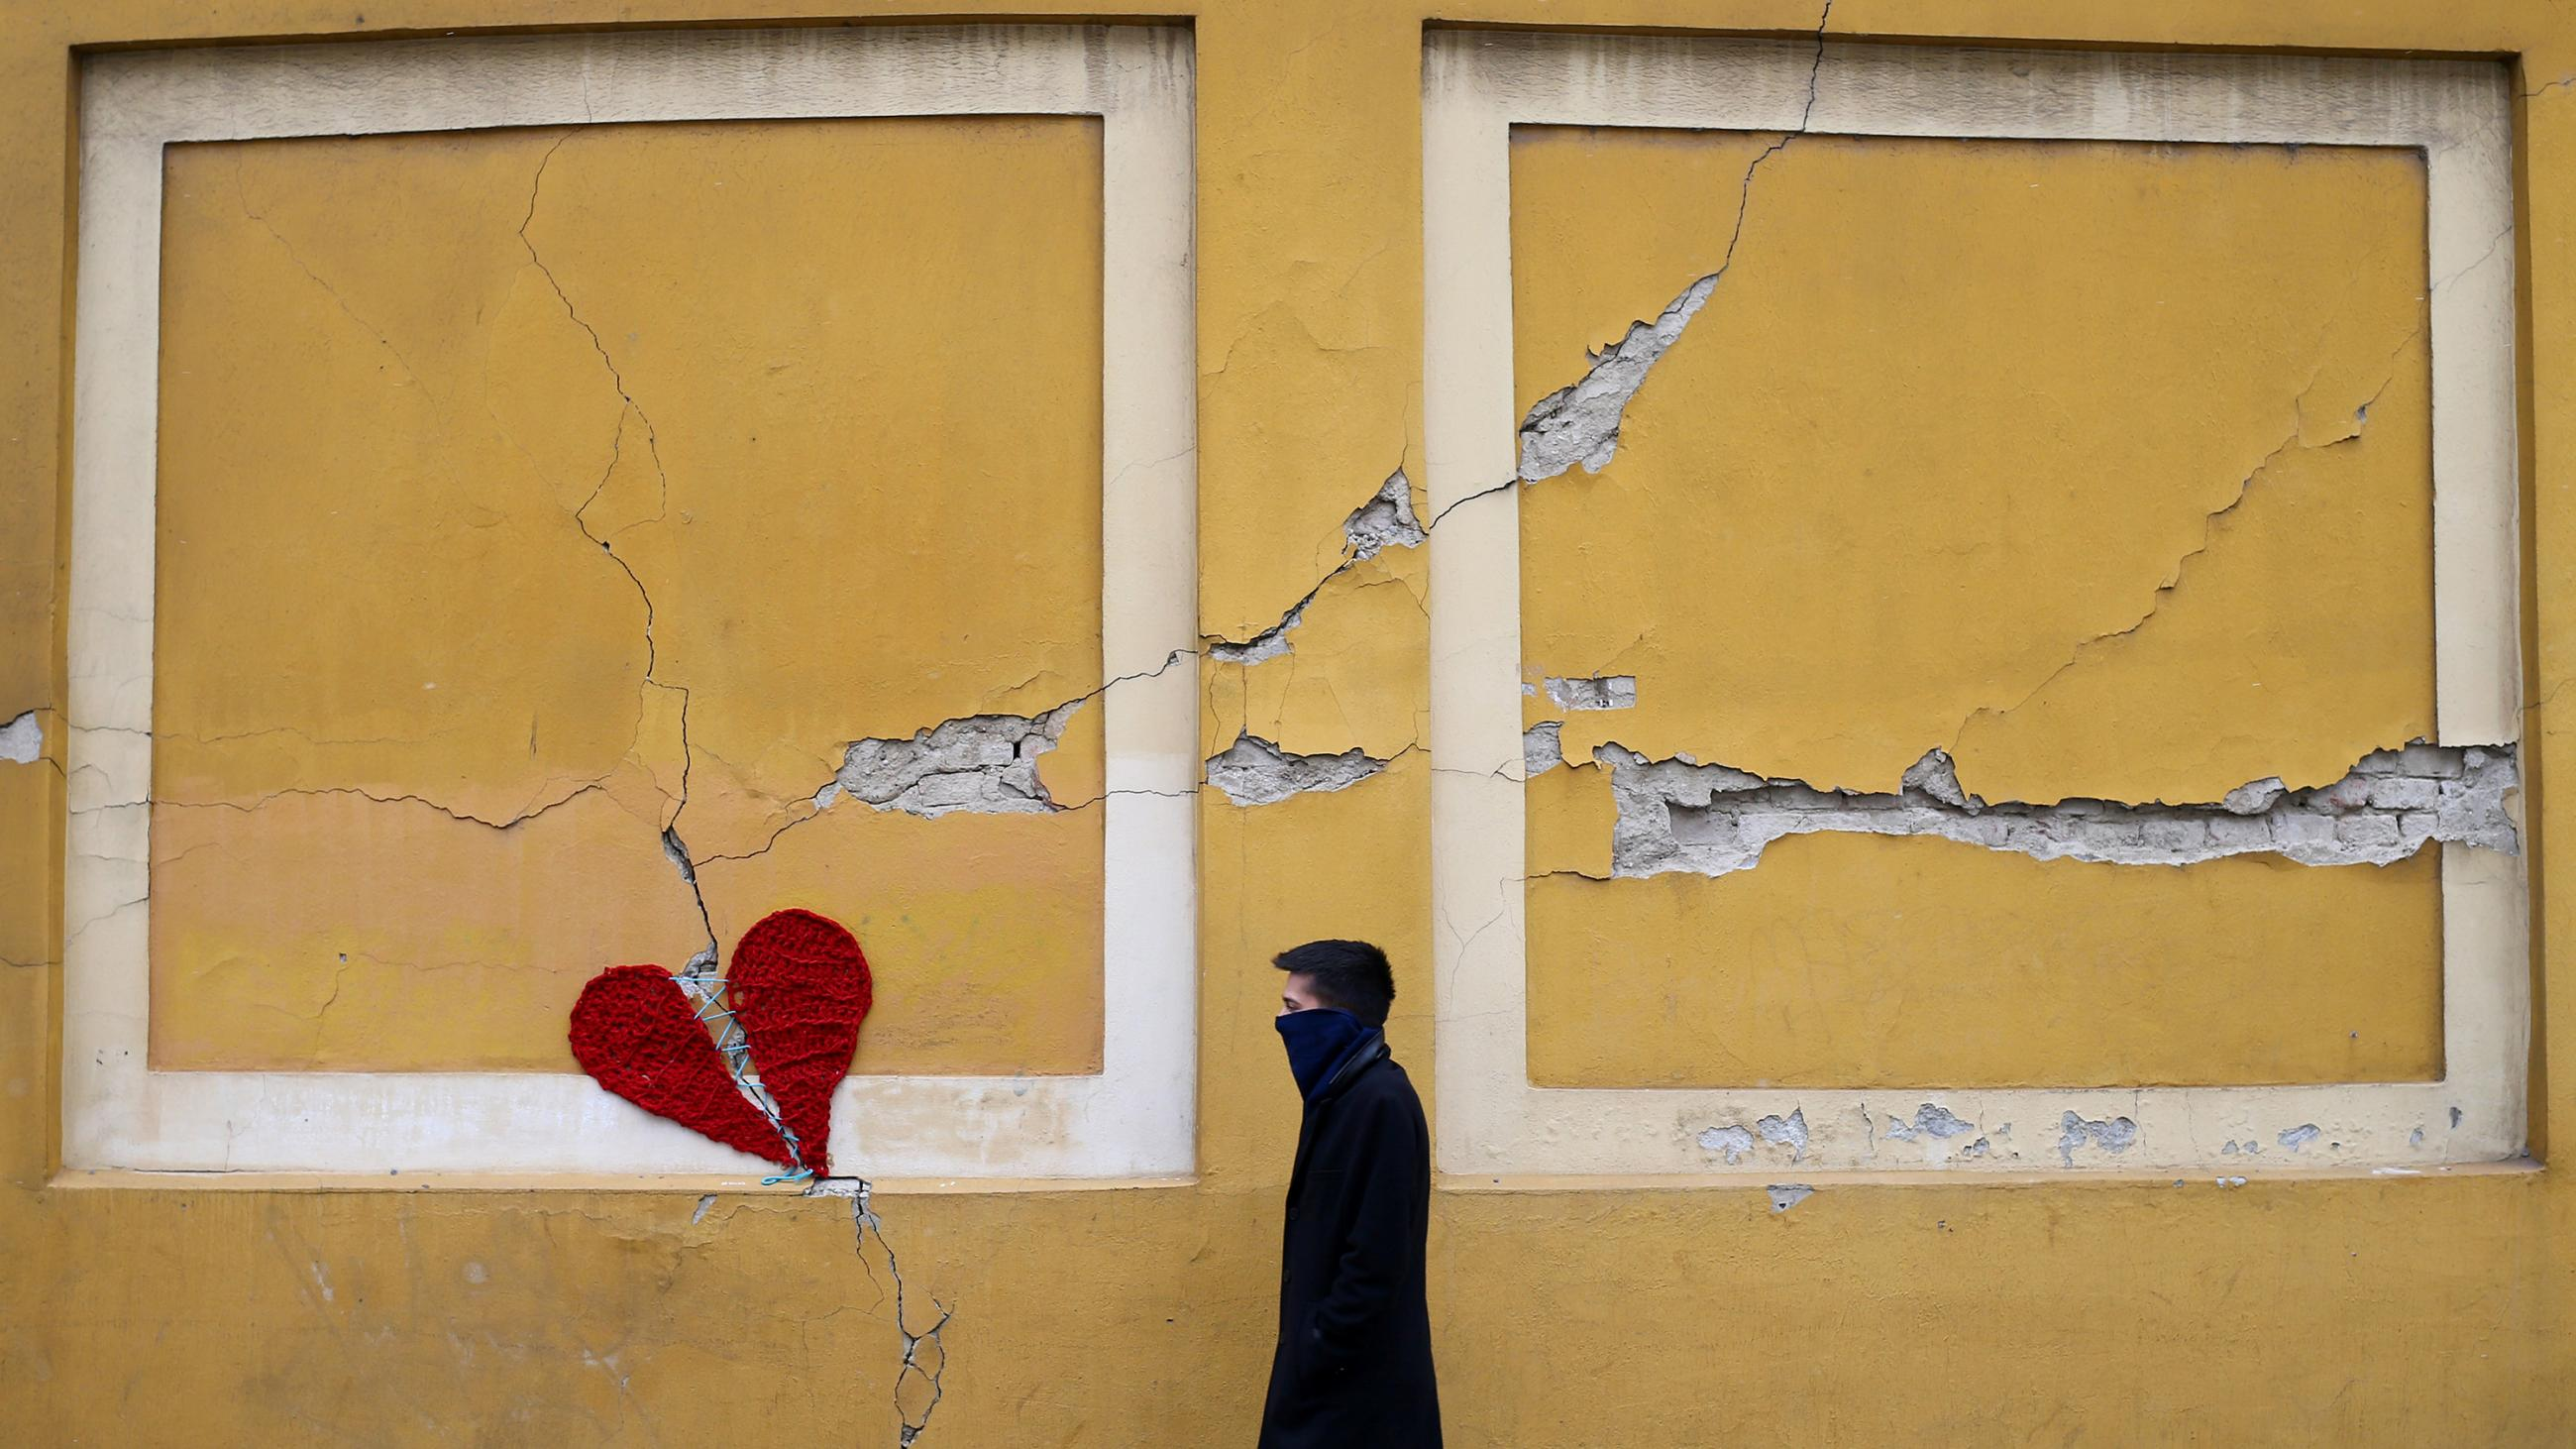 The photo shows a man walking past the heart on the side of a building that appears cracked.